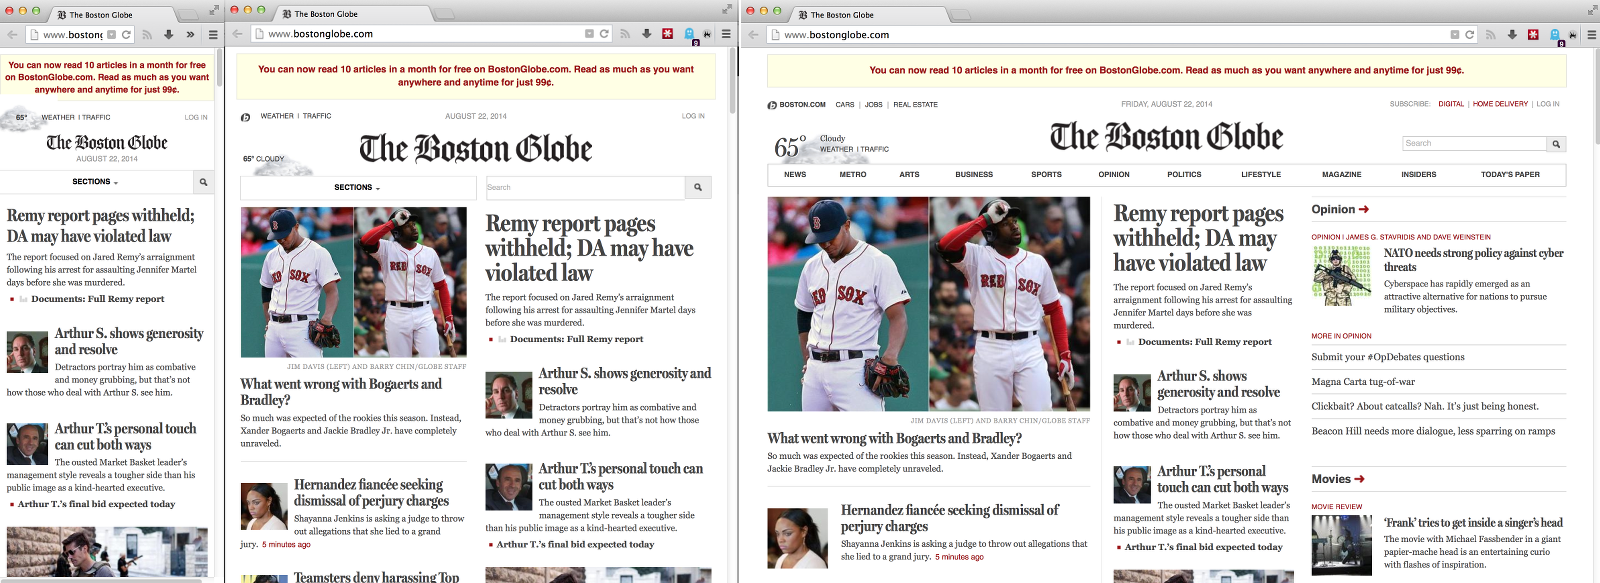 The Boston Globe website at phone, tablet, and desktop sizes.